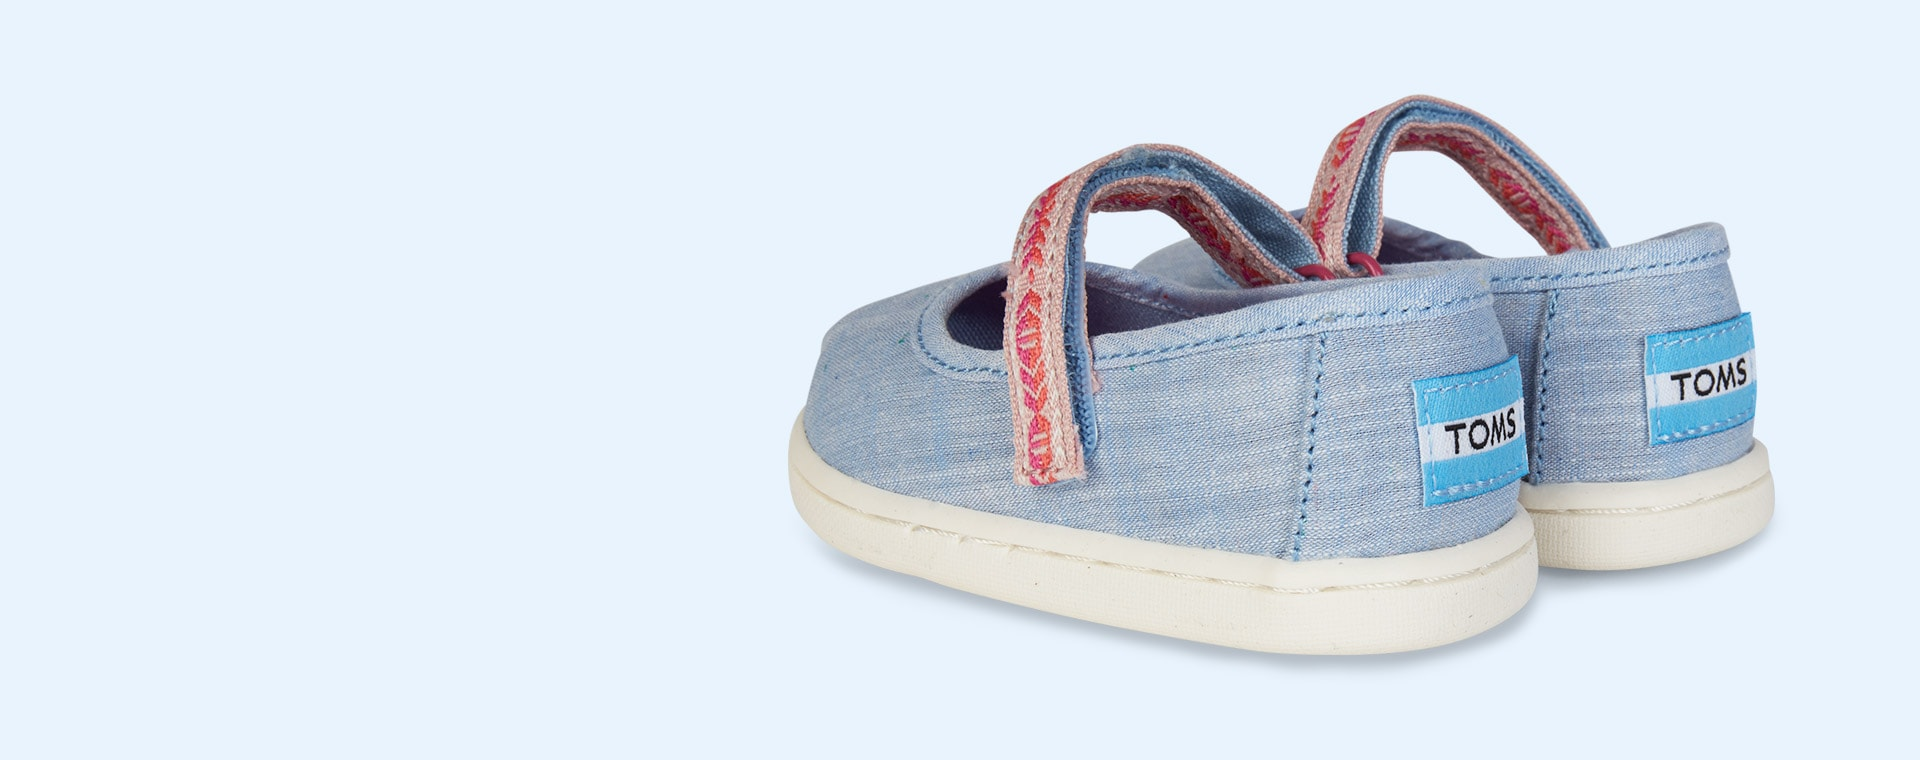 8560380b7e4 Buy the TOMS Mary Jane Shoe at KIDLY EU